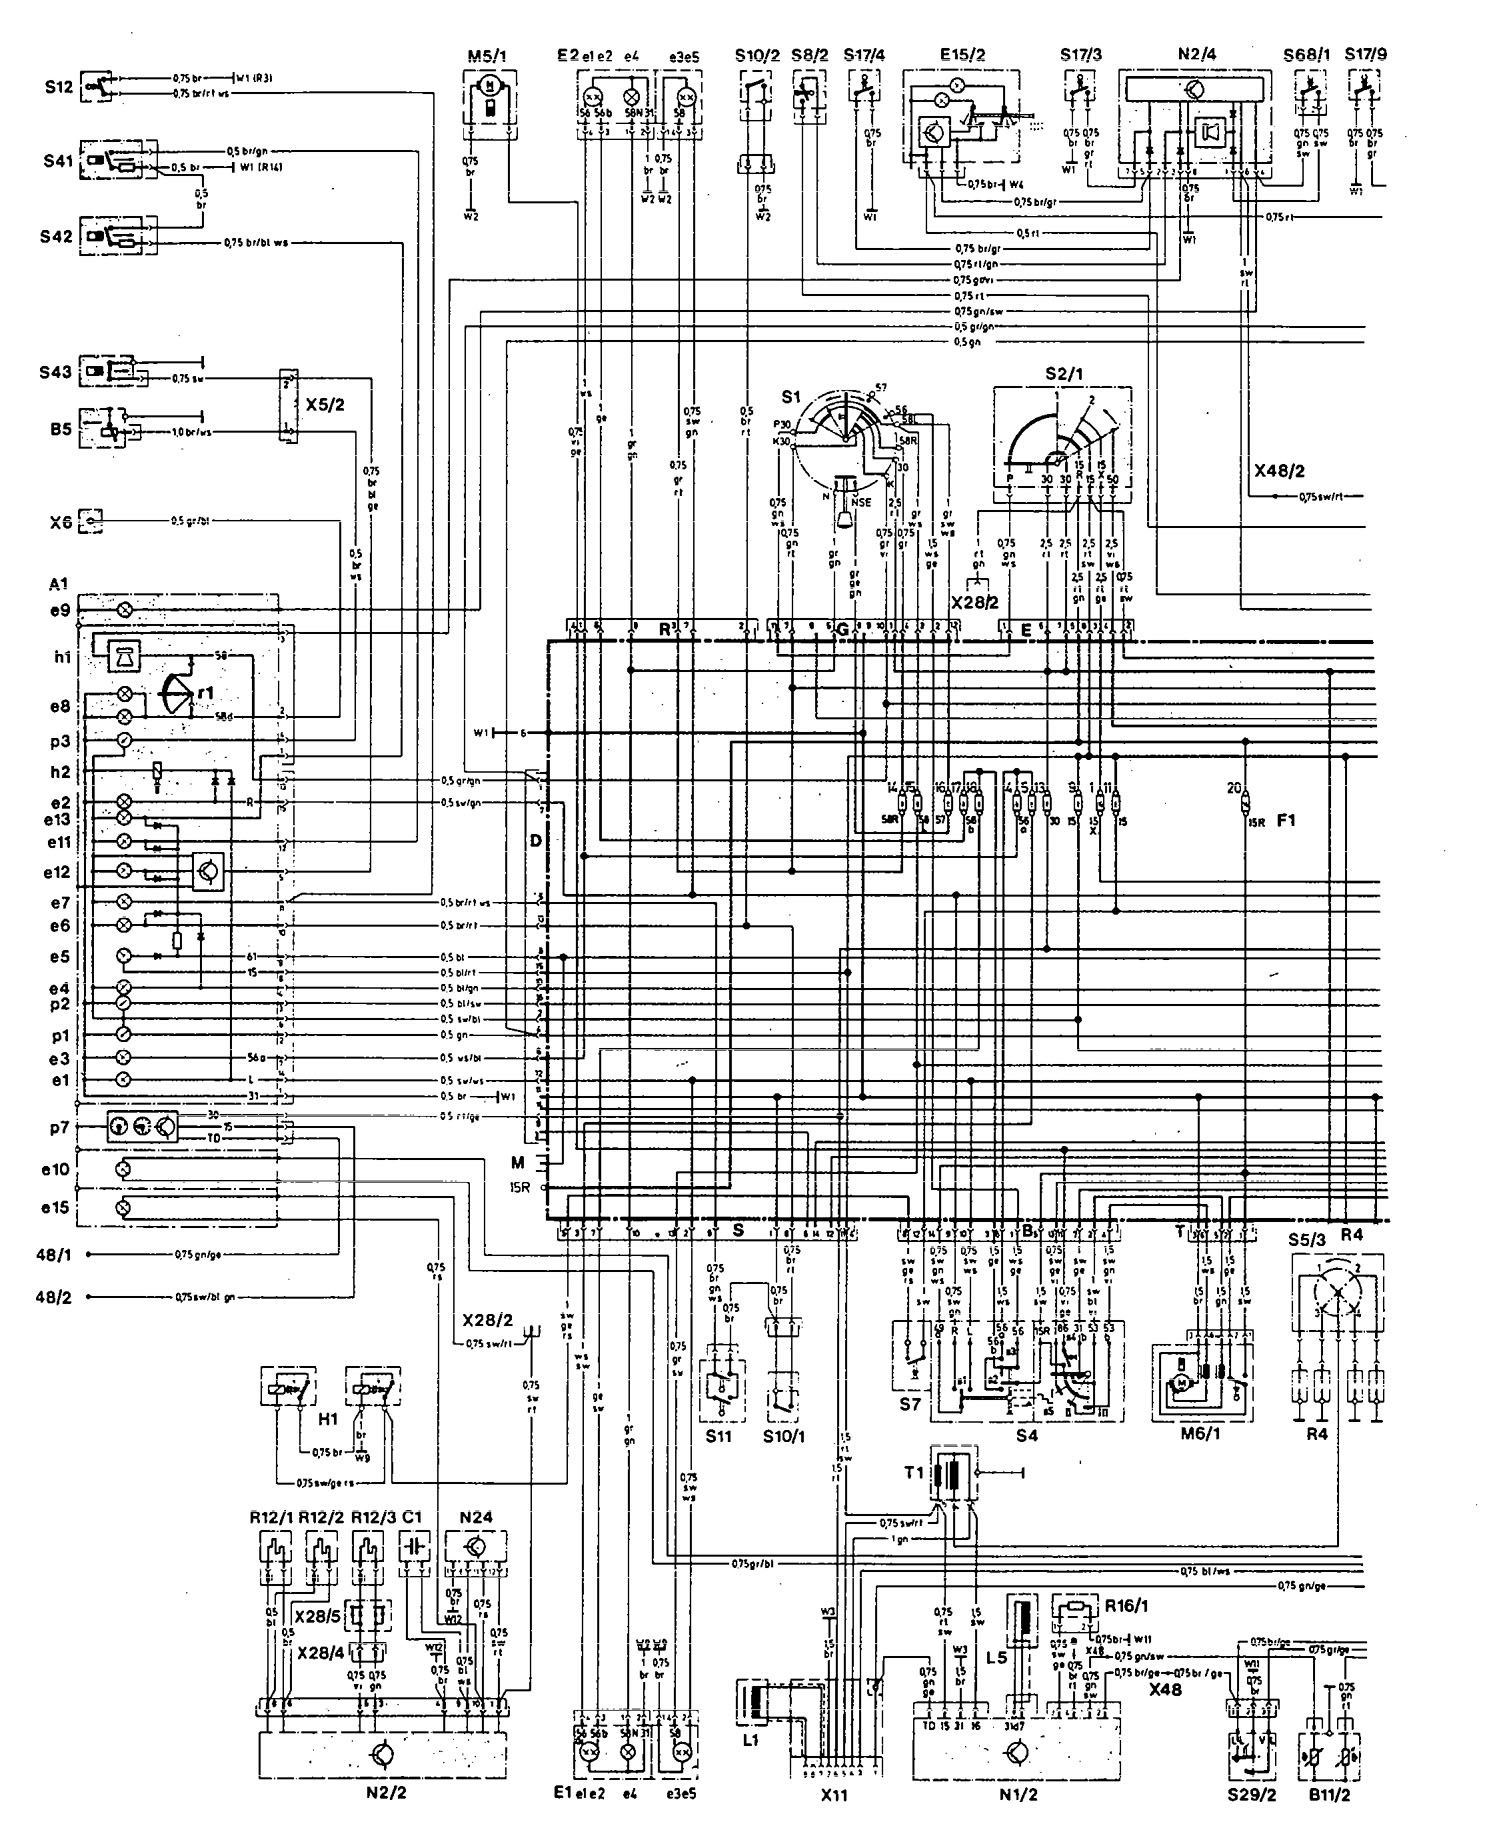 Mercedes 190E 1992 wiring diagrams cooling fans